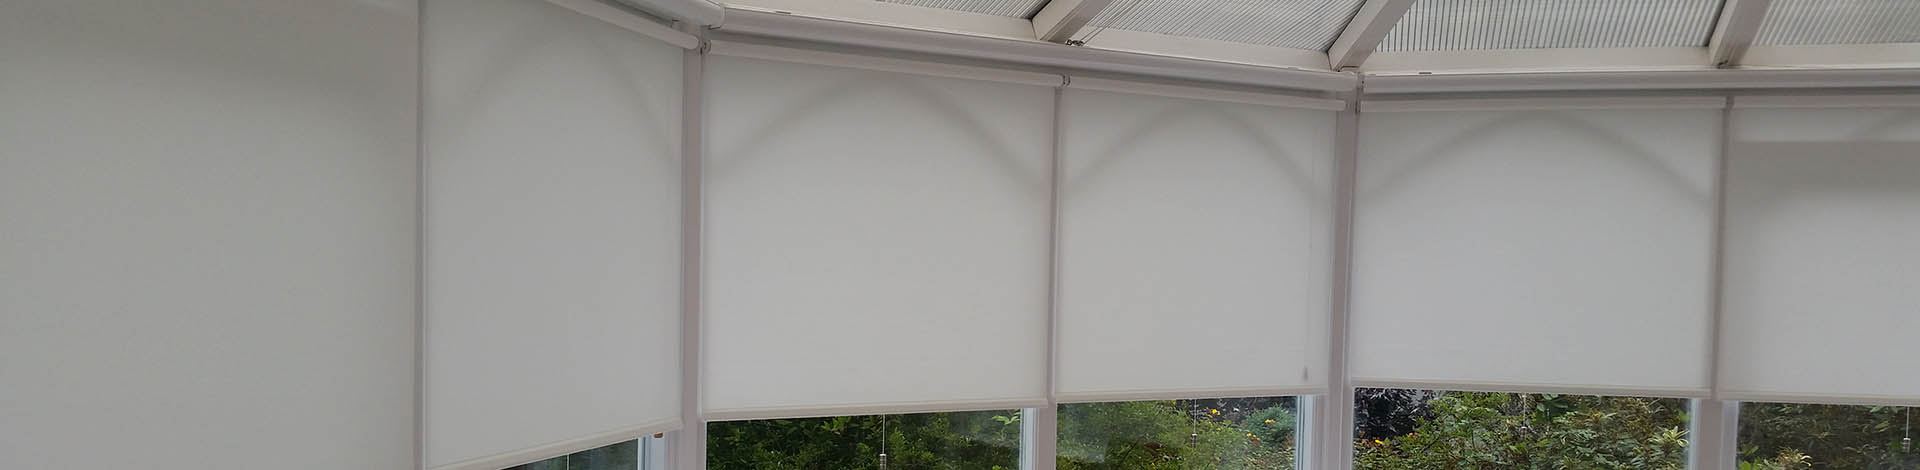 Discovery Blinds and Shutters Conservatory Roller Blinds with a Video oF a recent Installation of motorised roller blinds